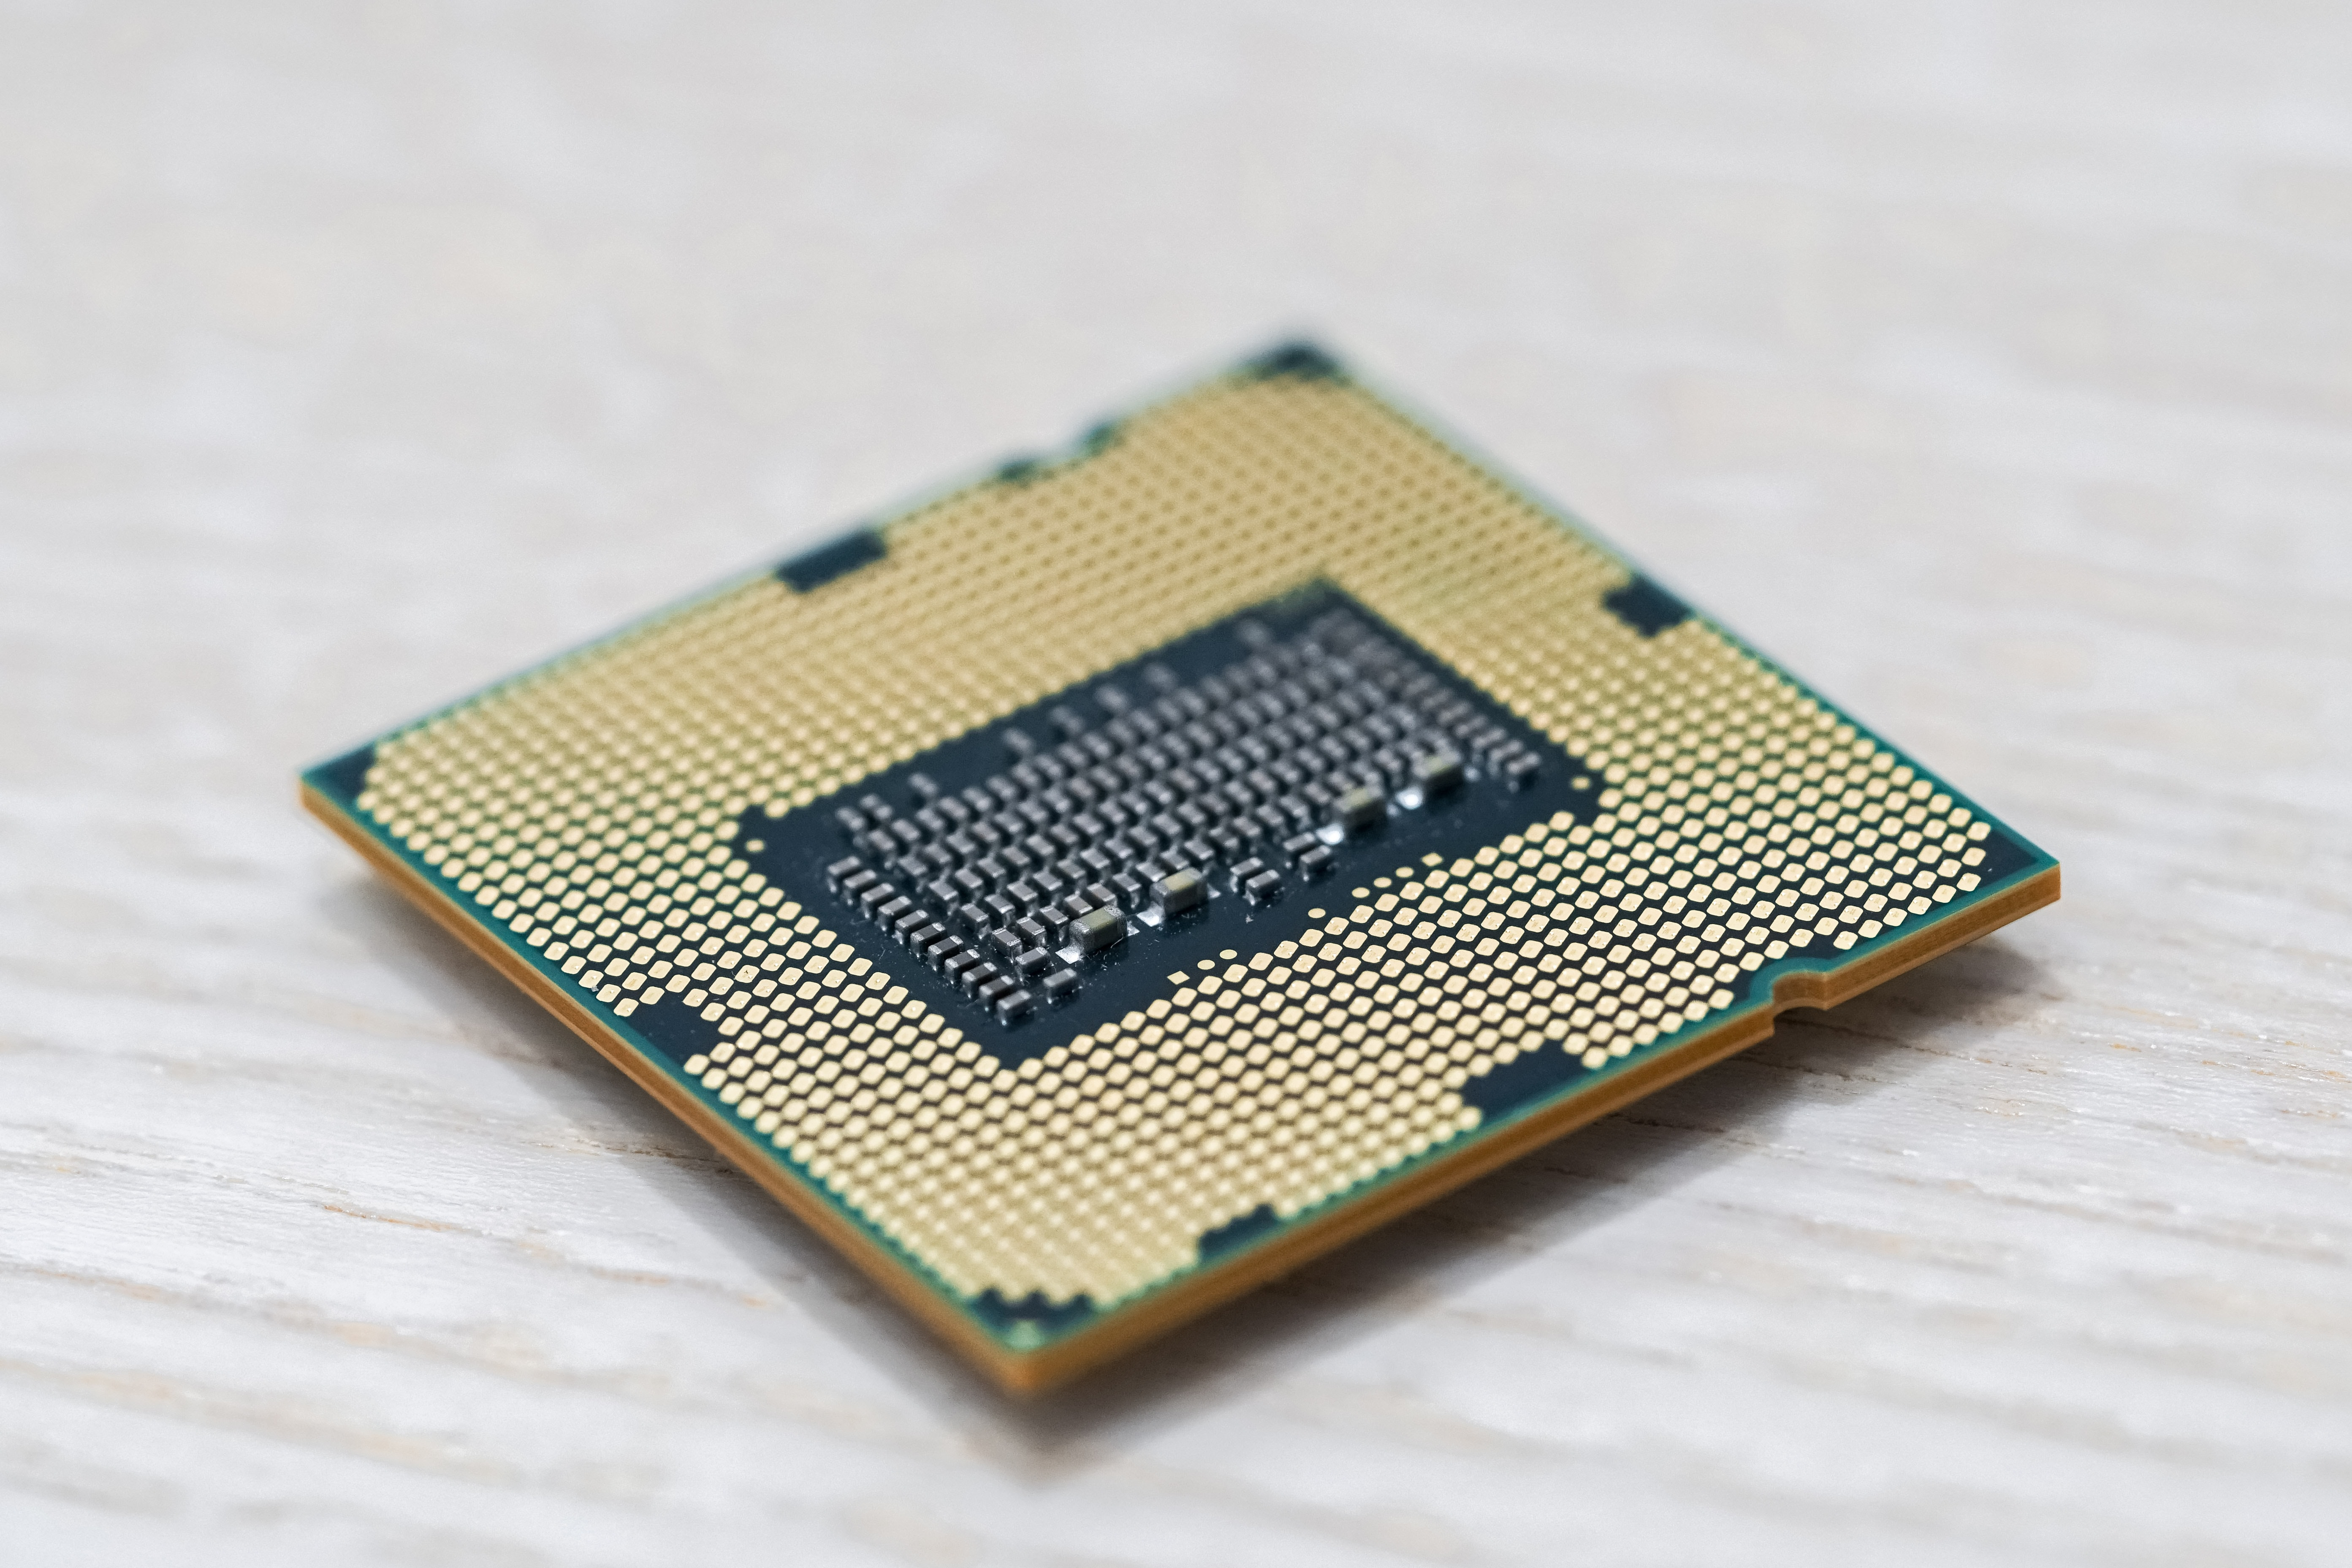 A close up of a microchip component